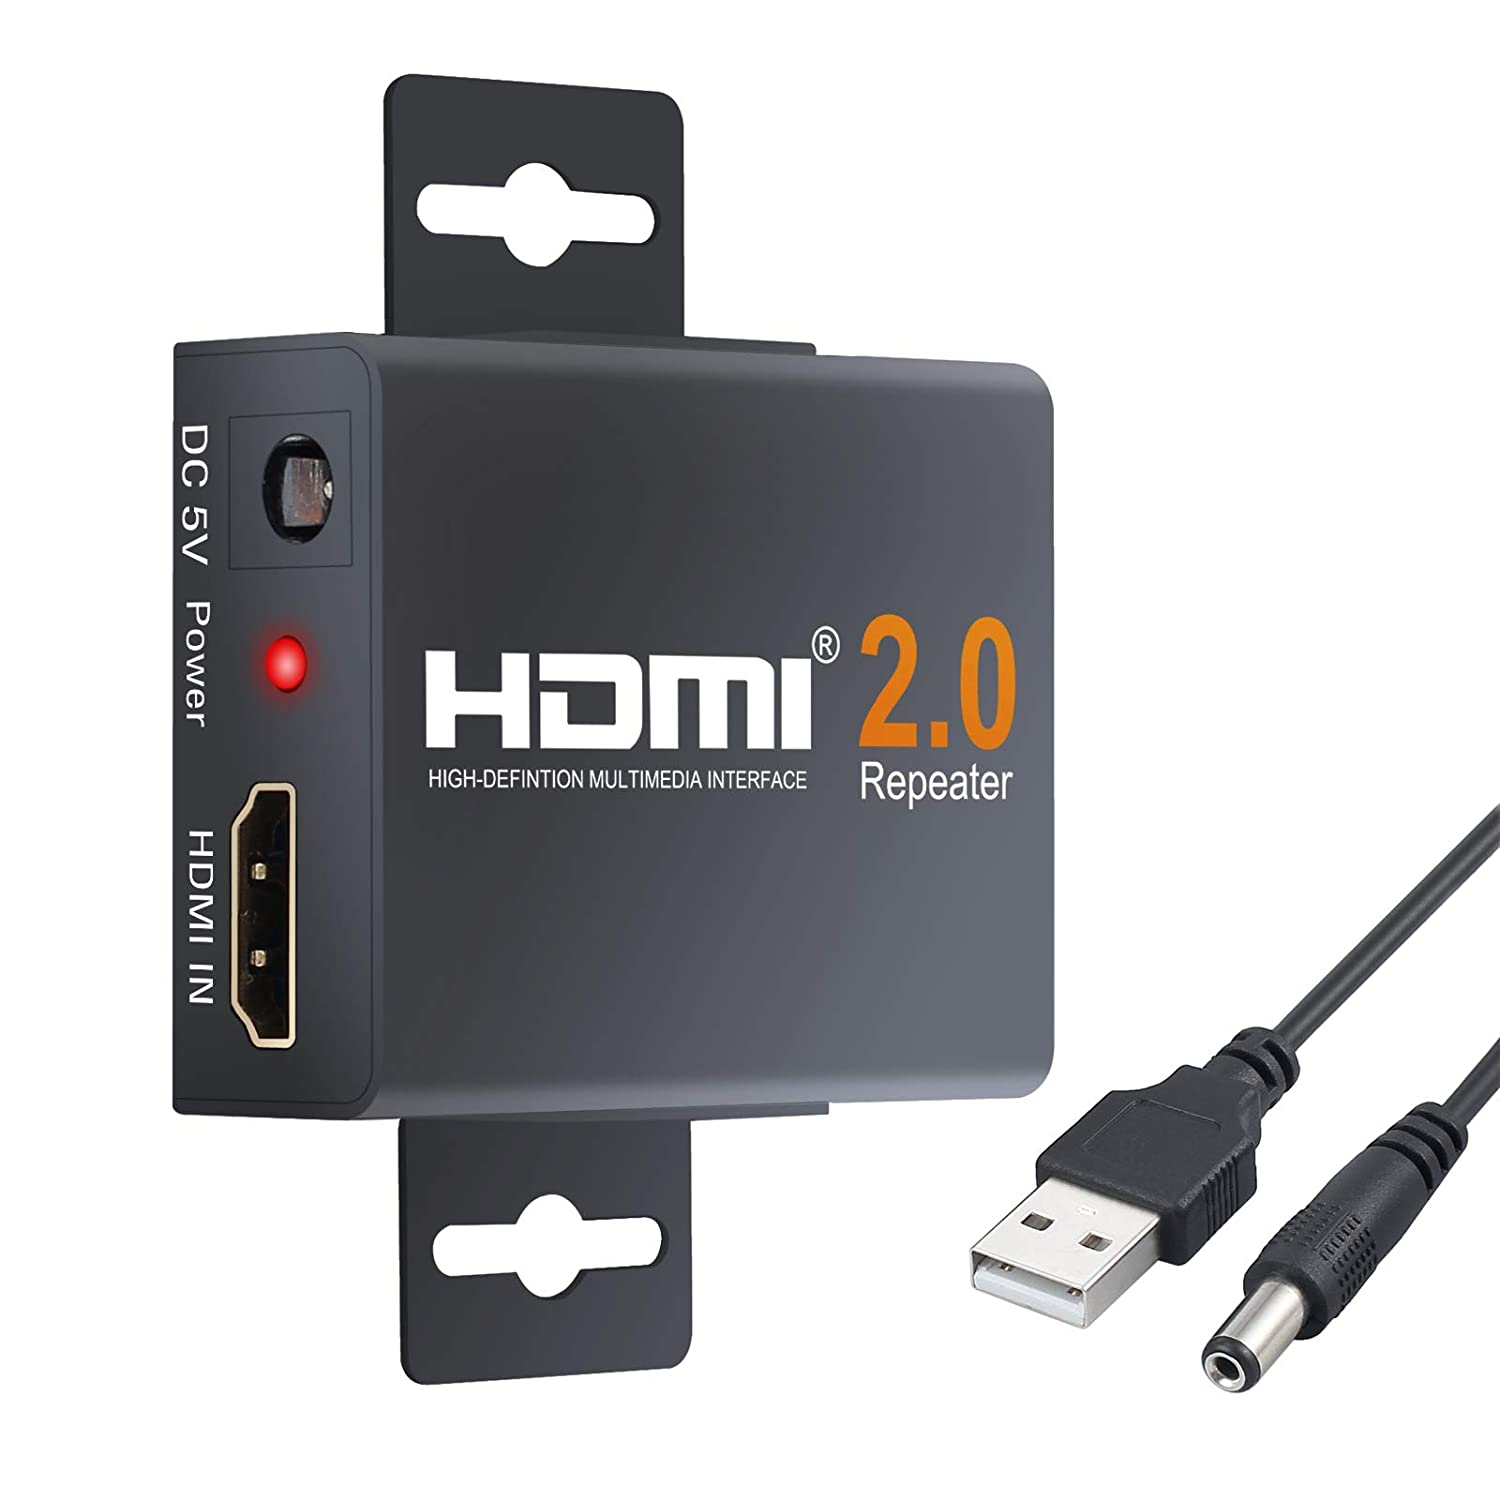 LiNKFOR HDMI Repeater 2160P 4K 3D HDMI Booster Signal Extender Adapter Over Signal HDTV 60 Meters Lossless Transmission for Data Center Control, Information Distribution, Conference Room Presentation, School and Corporate Training Environments